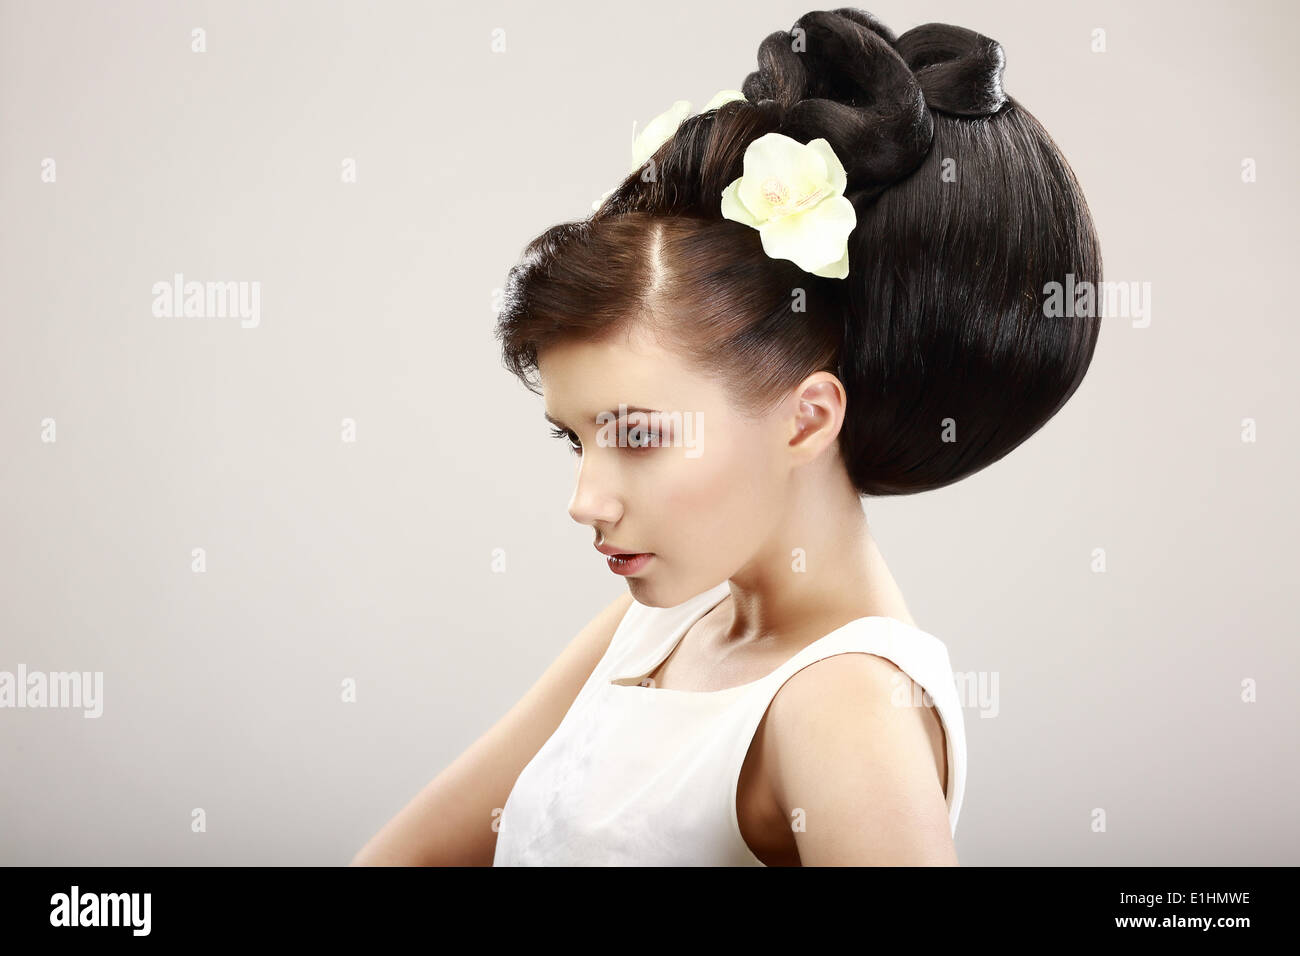 Vogue Style. Classy Charismatic Woman with Trendy Luxurious Hairstyle. Allure - Stock Image